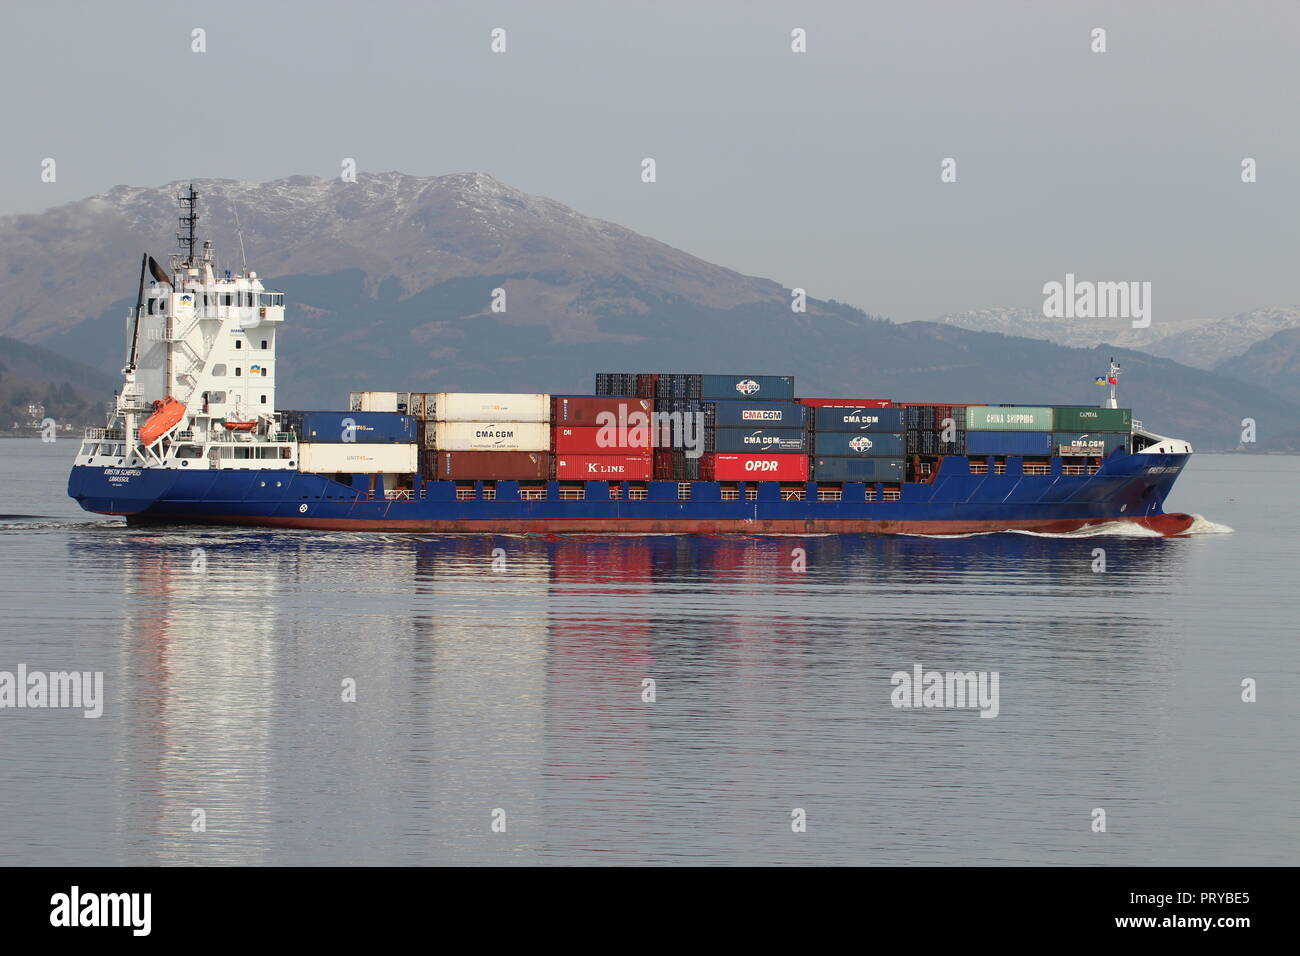 MS Kristin Schepers, a container vessel operated by HS Schiffahrt, passing Gourock on the Firth of Clyde. Stock Photo